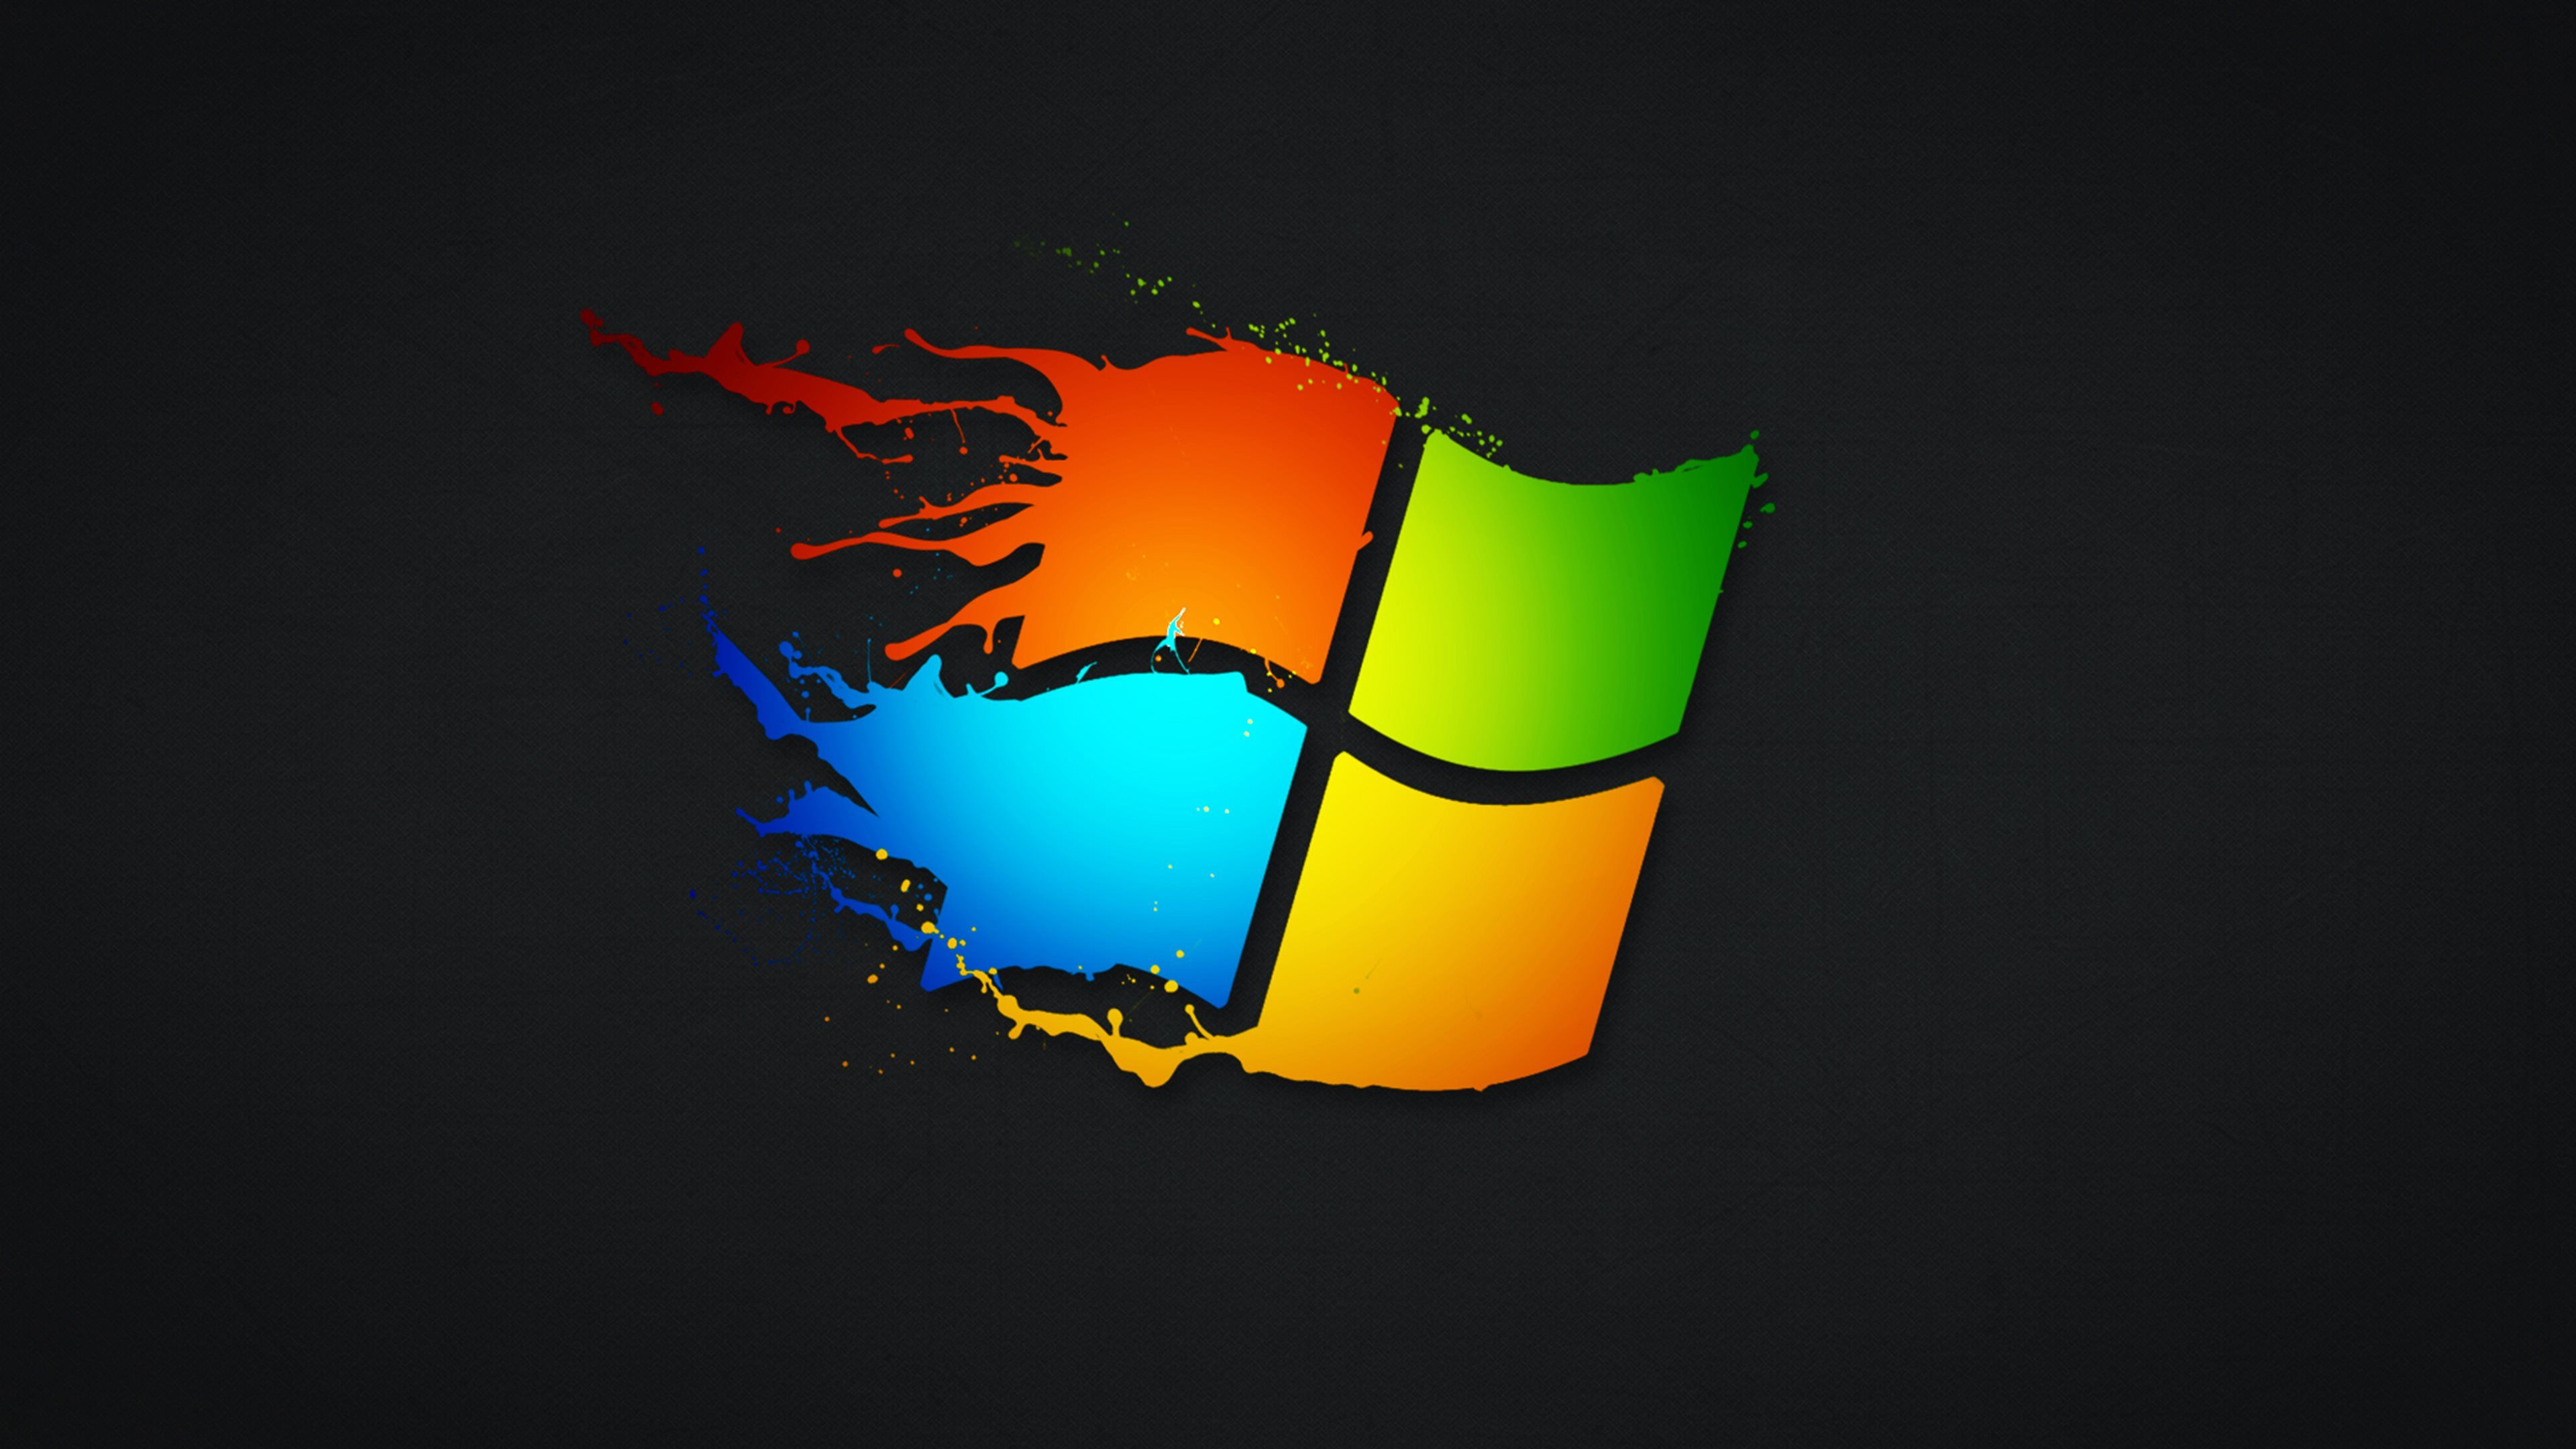 Ultra Hd Windows Wallpapers Top Free Ultra Hd Windows